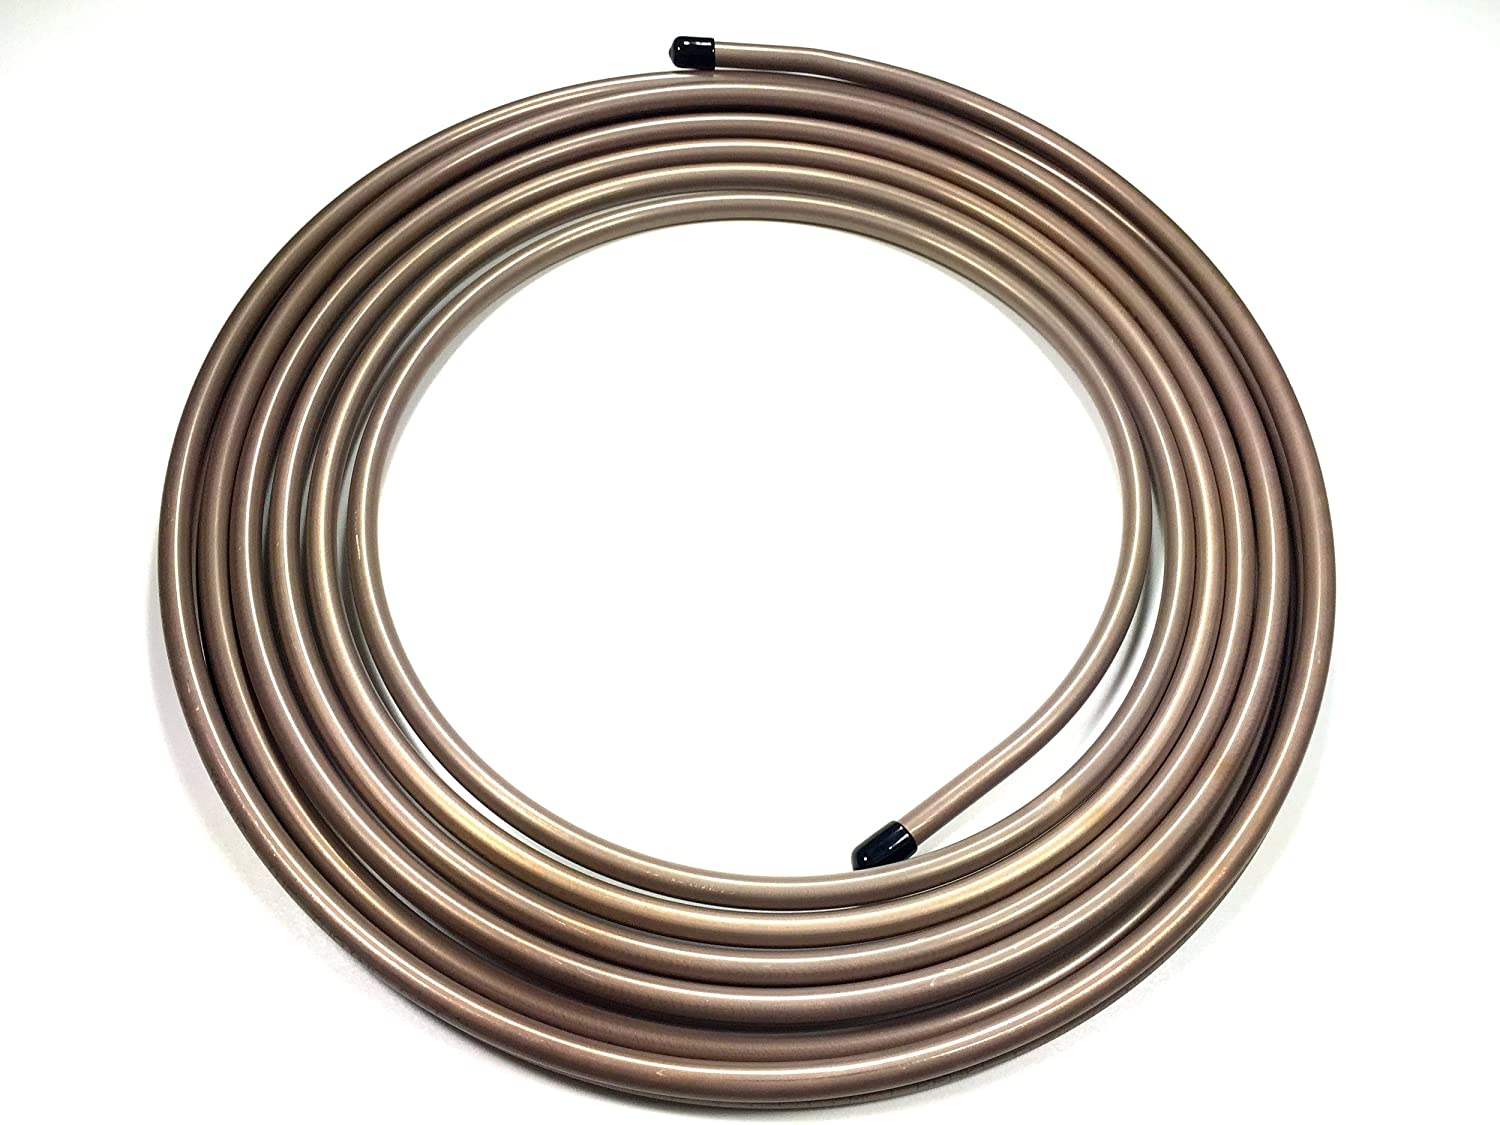 25 ft of Copper Nickel Fuel/Transmission Line Coil. 1/2' O.D. Tube thestopshop